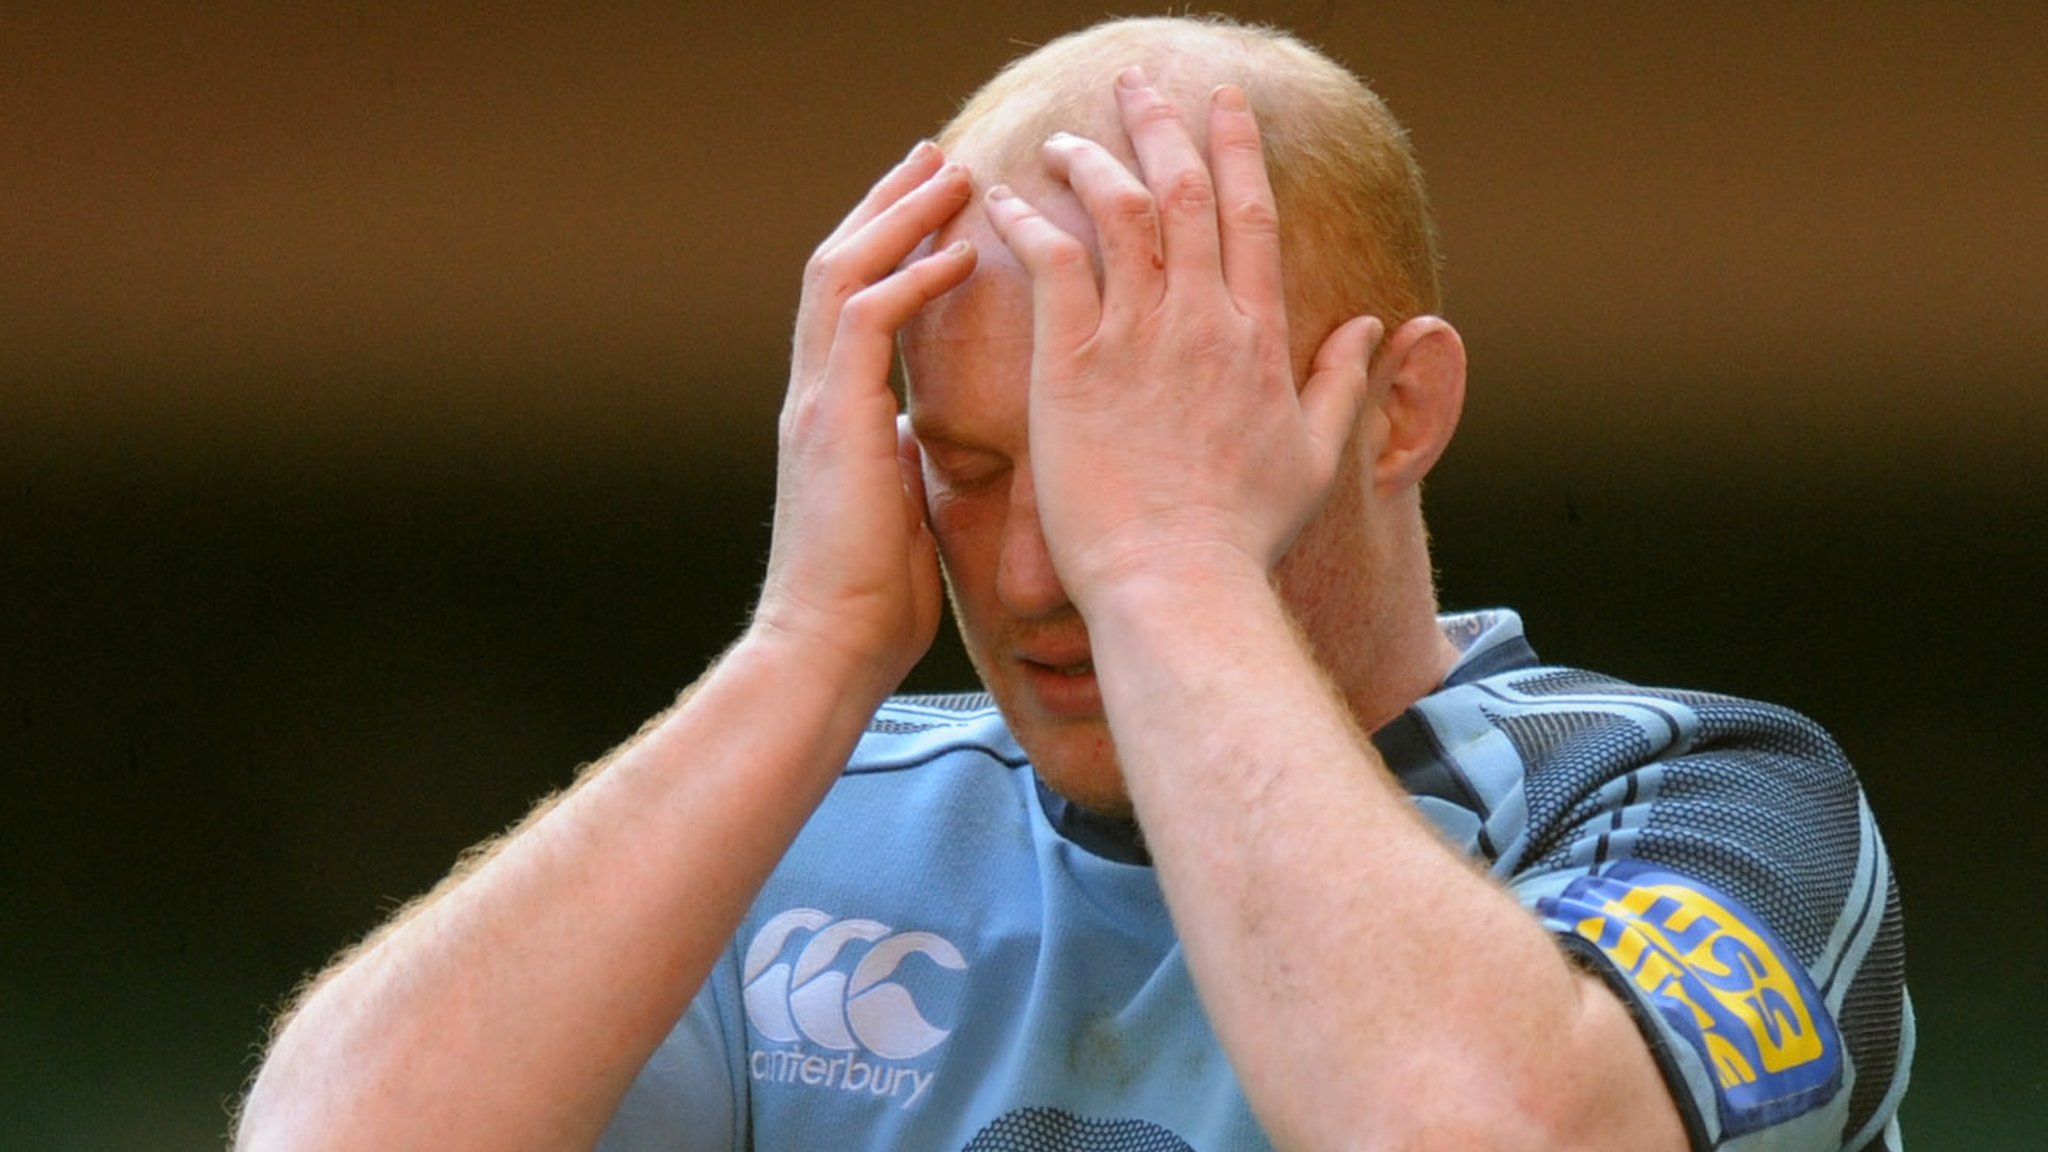 Cigarettes and missed kicks: Cardiff Blues v Leicester shootout 10 years on